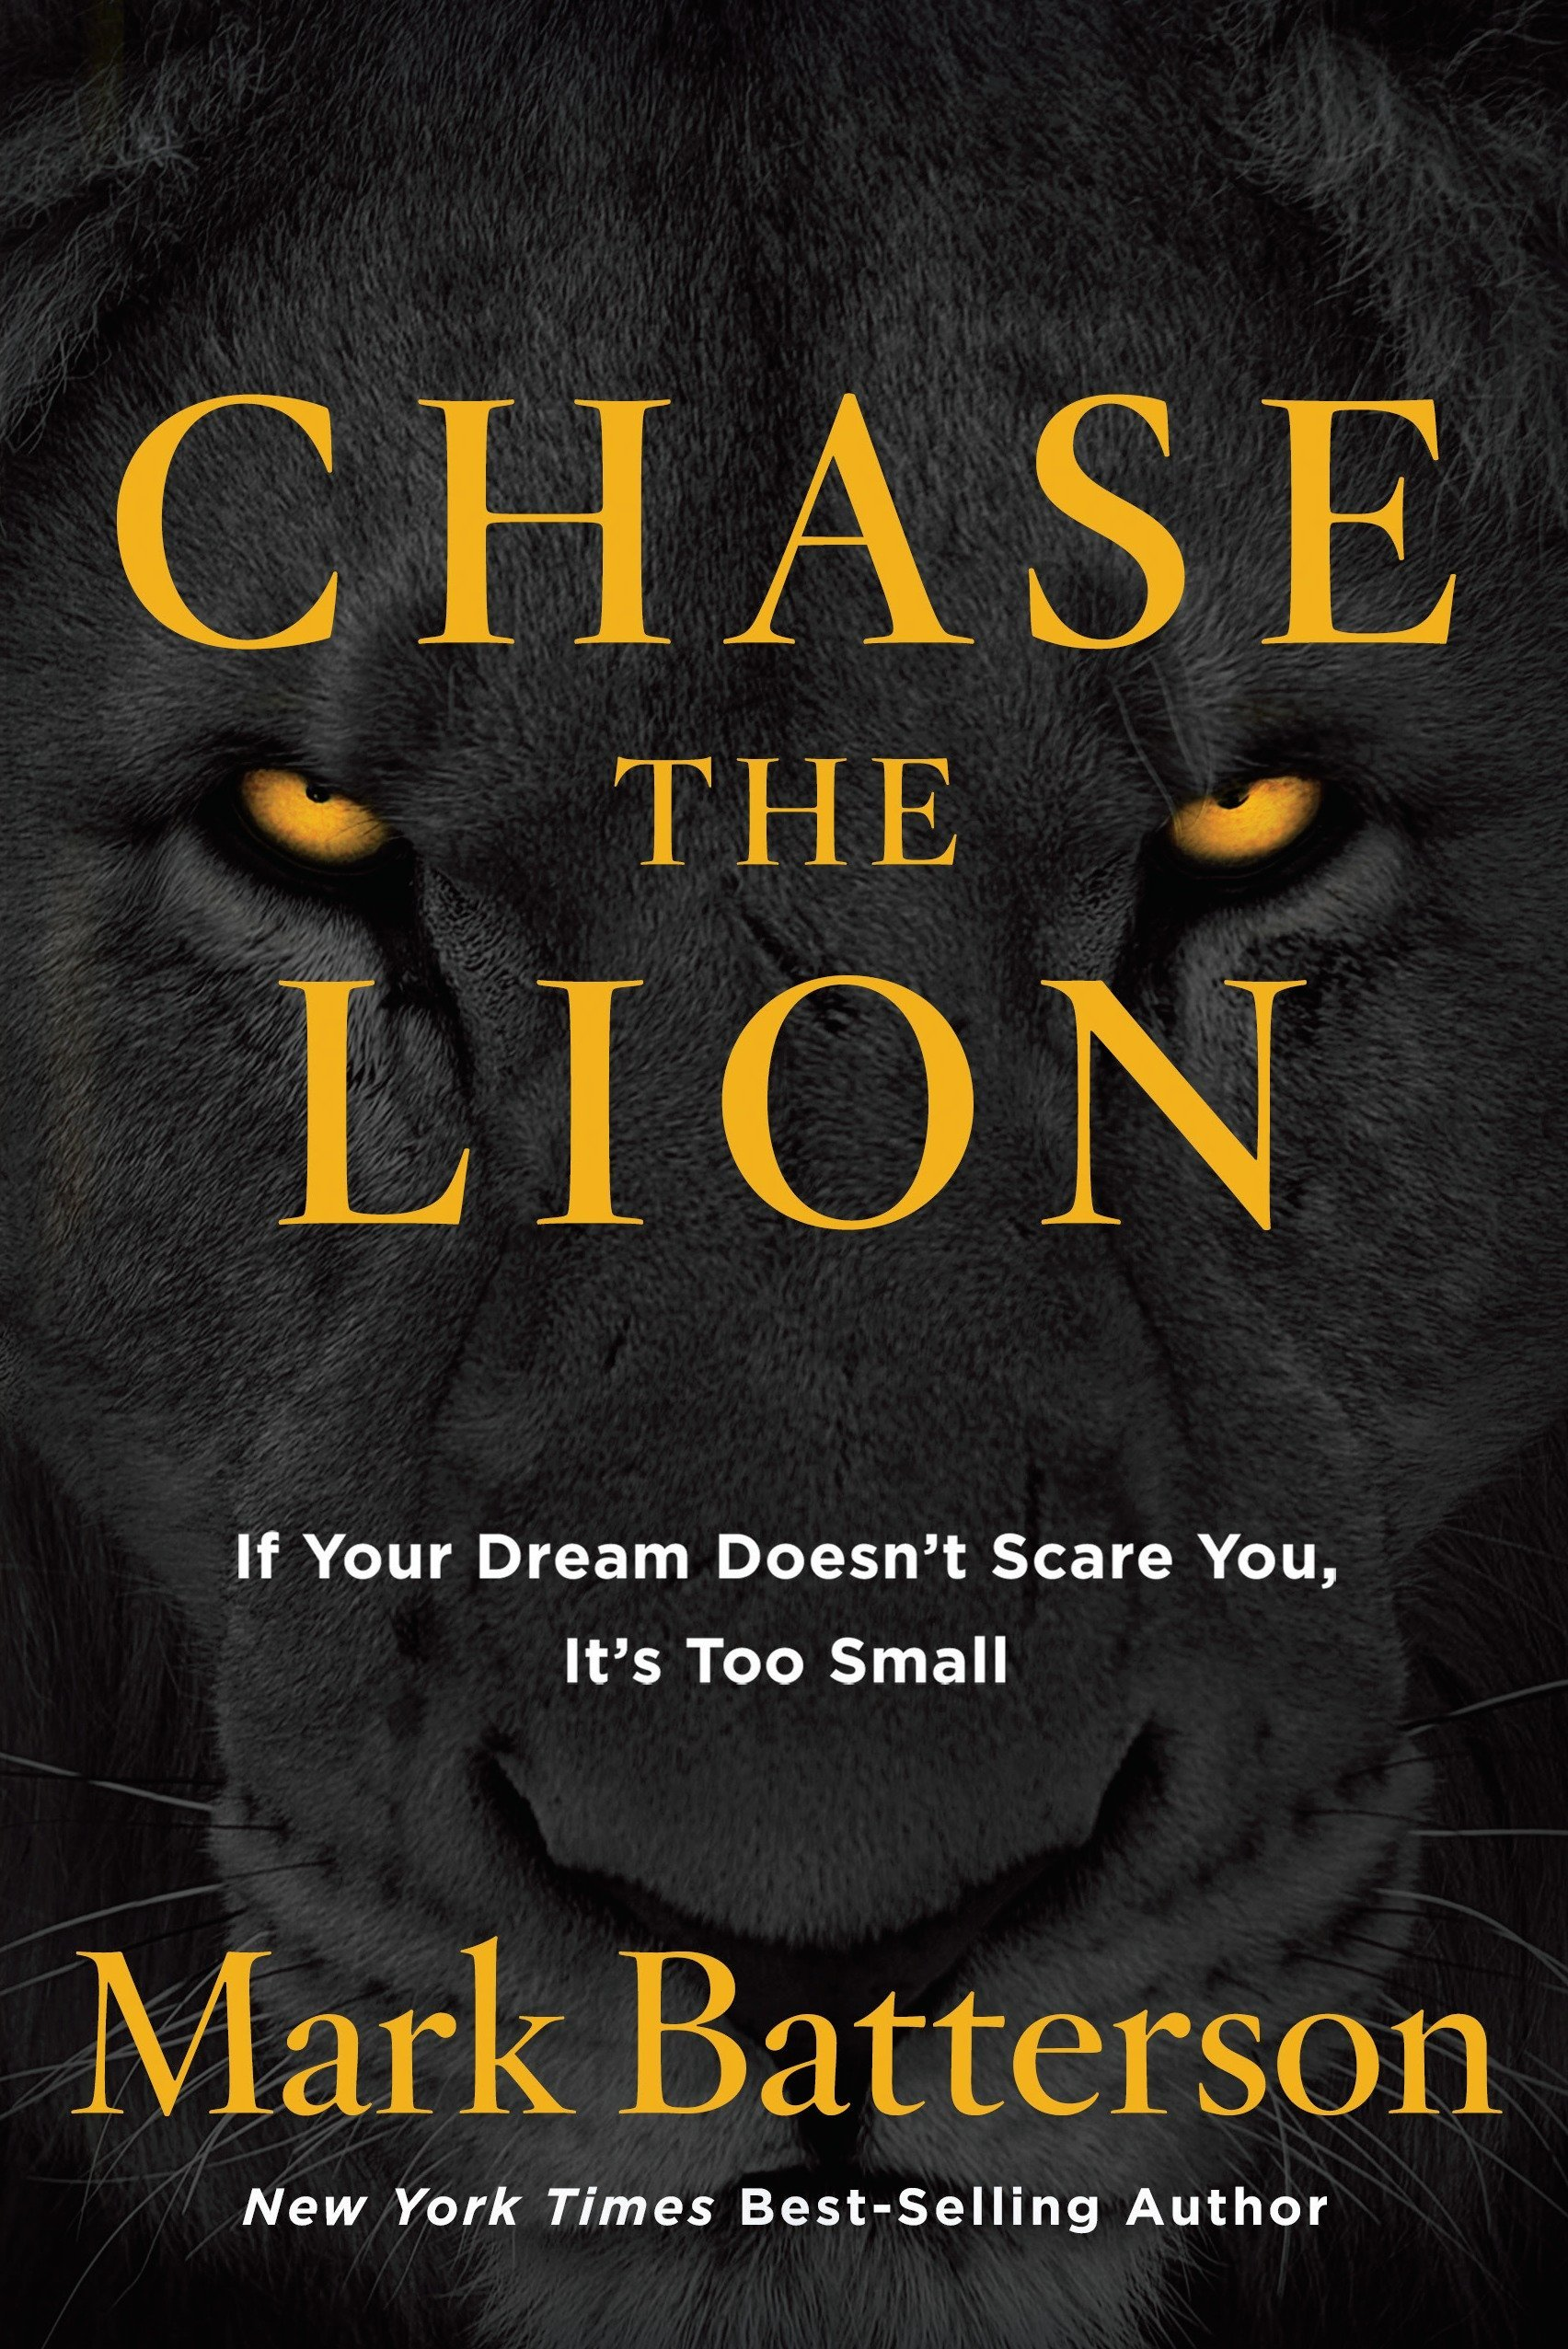 Chase the Lion: If Your Dream Doesn't Scare You, It's Too